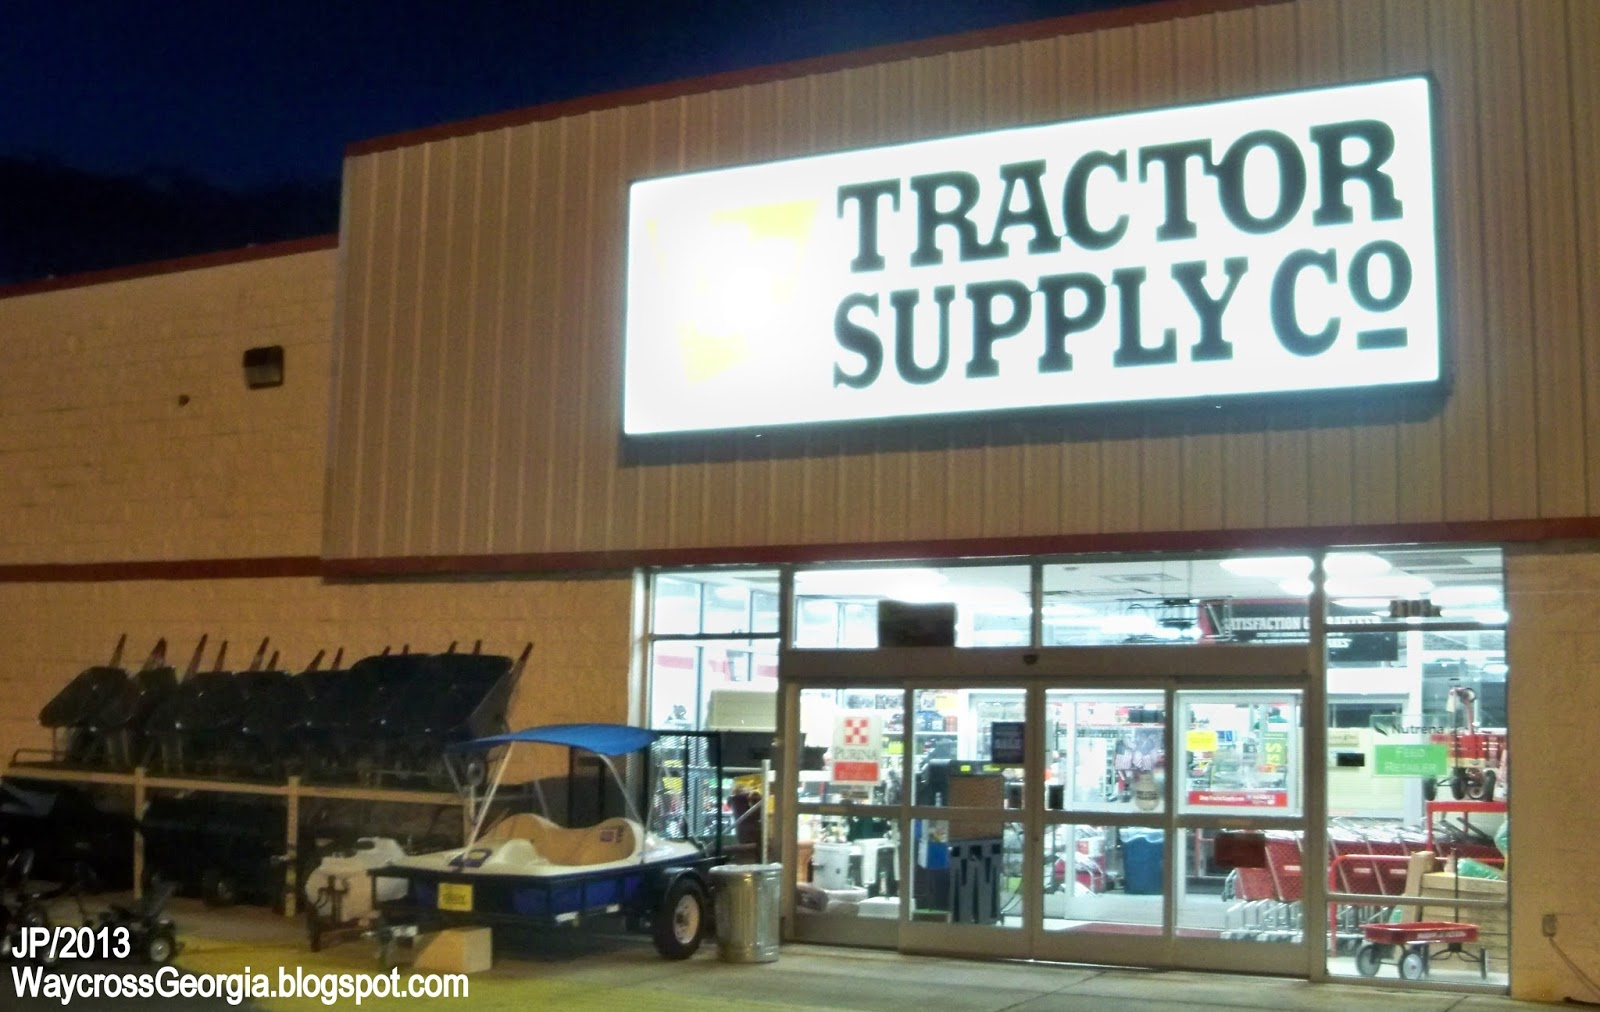 Verified 15 hours ago Added 15 hours ago Last Day! Get Offer. UP TO. 30% Tractor Supply Company has grown and flourished over the years. From its beginnings as a North Dakota mail order tractor parts catalog, TSC has become the largest U.S. farm and ranch retailer, with more than a thousand stores and 15, employees. Use Tractor.